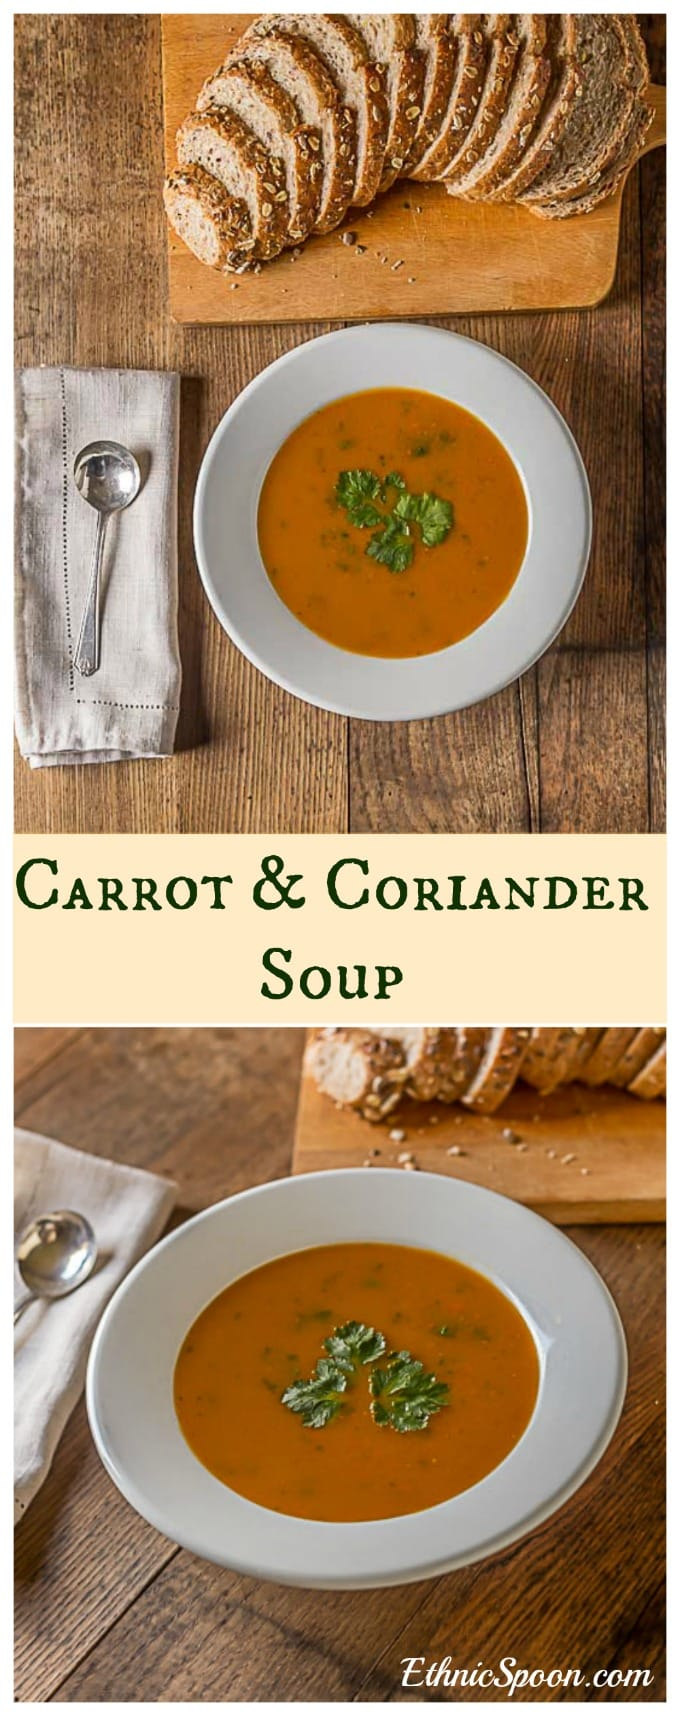 Irish inspired carrot coriander soup with a nice crusty bread plus the history of carrots throughout the ages. | ethnicspoon.com #irishsoup #healthyandhearty #europeansoup